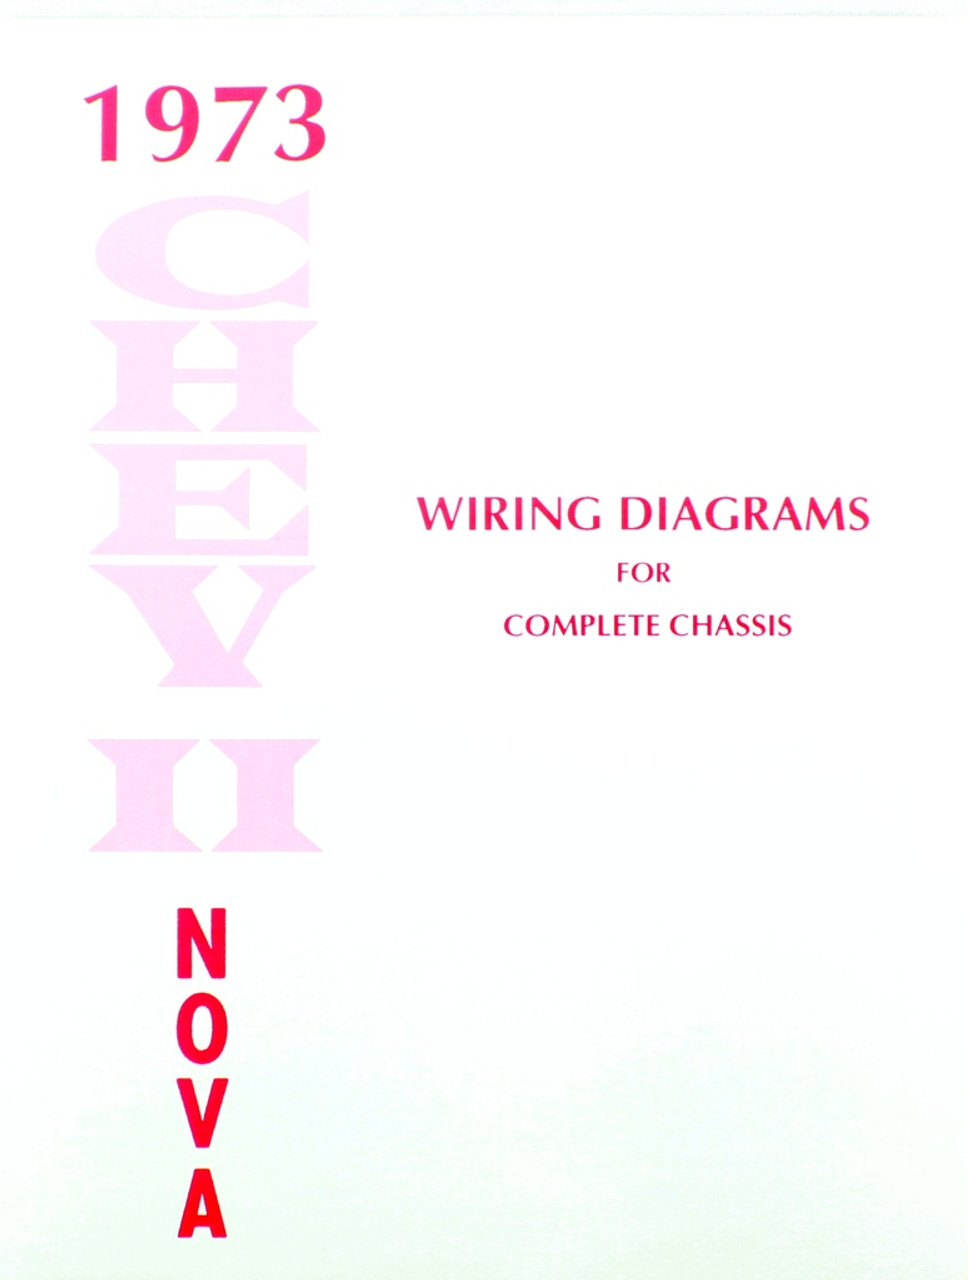 73 nova wiring diagram wiring schematic diagram 12 artundbusiness de73 chevy nova electrical wiring diagram manual [ 968 x 1280 Pixel ]